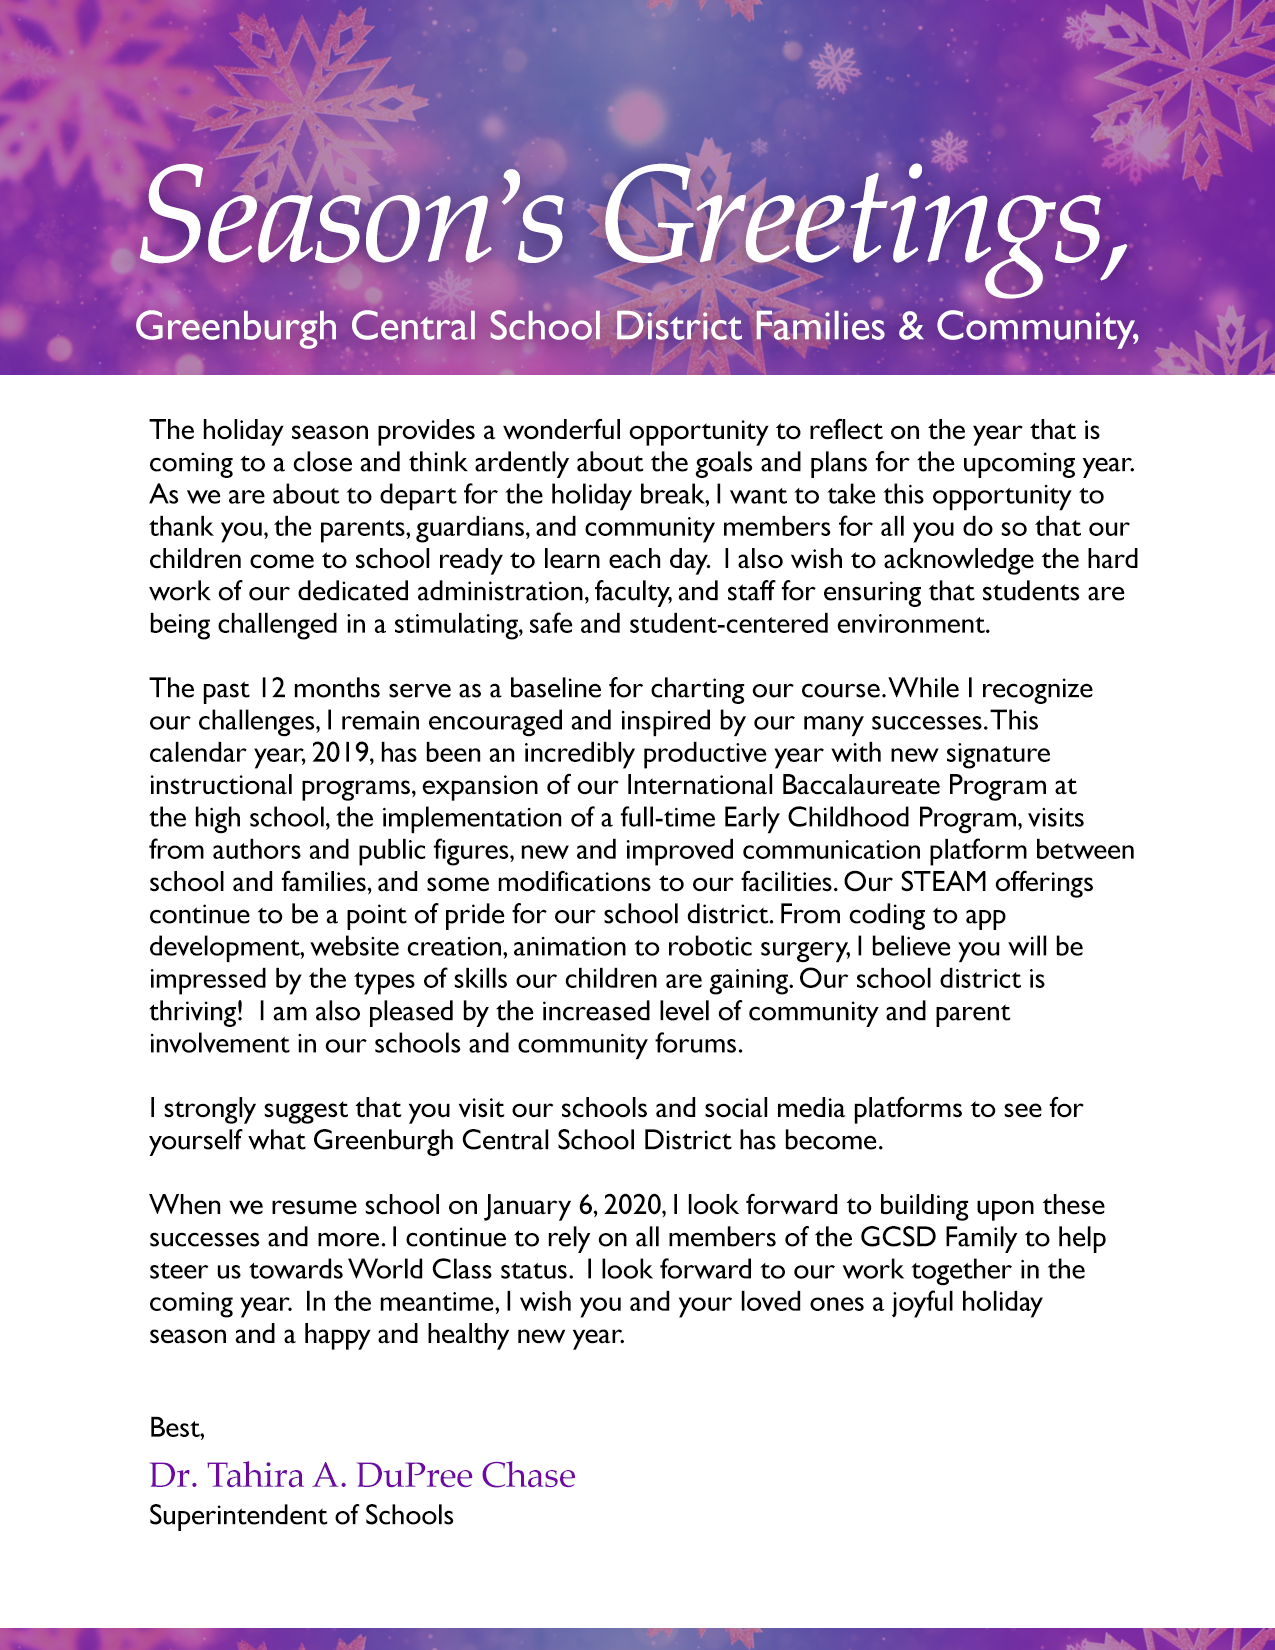 2019 Holiday Message from Superintendent, Dr. Tahira DuPree Chase